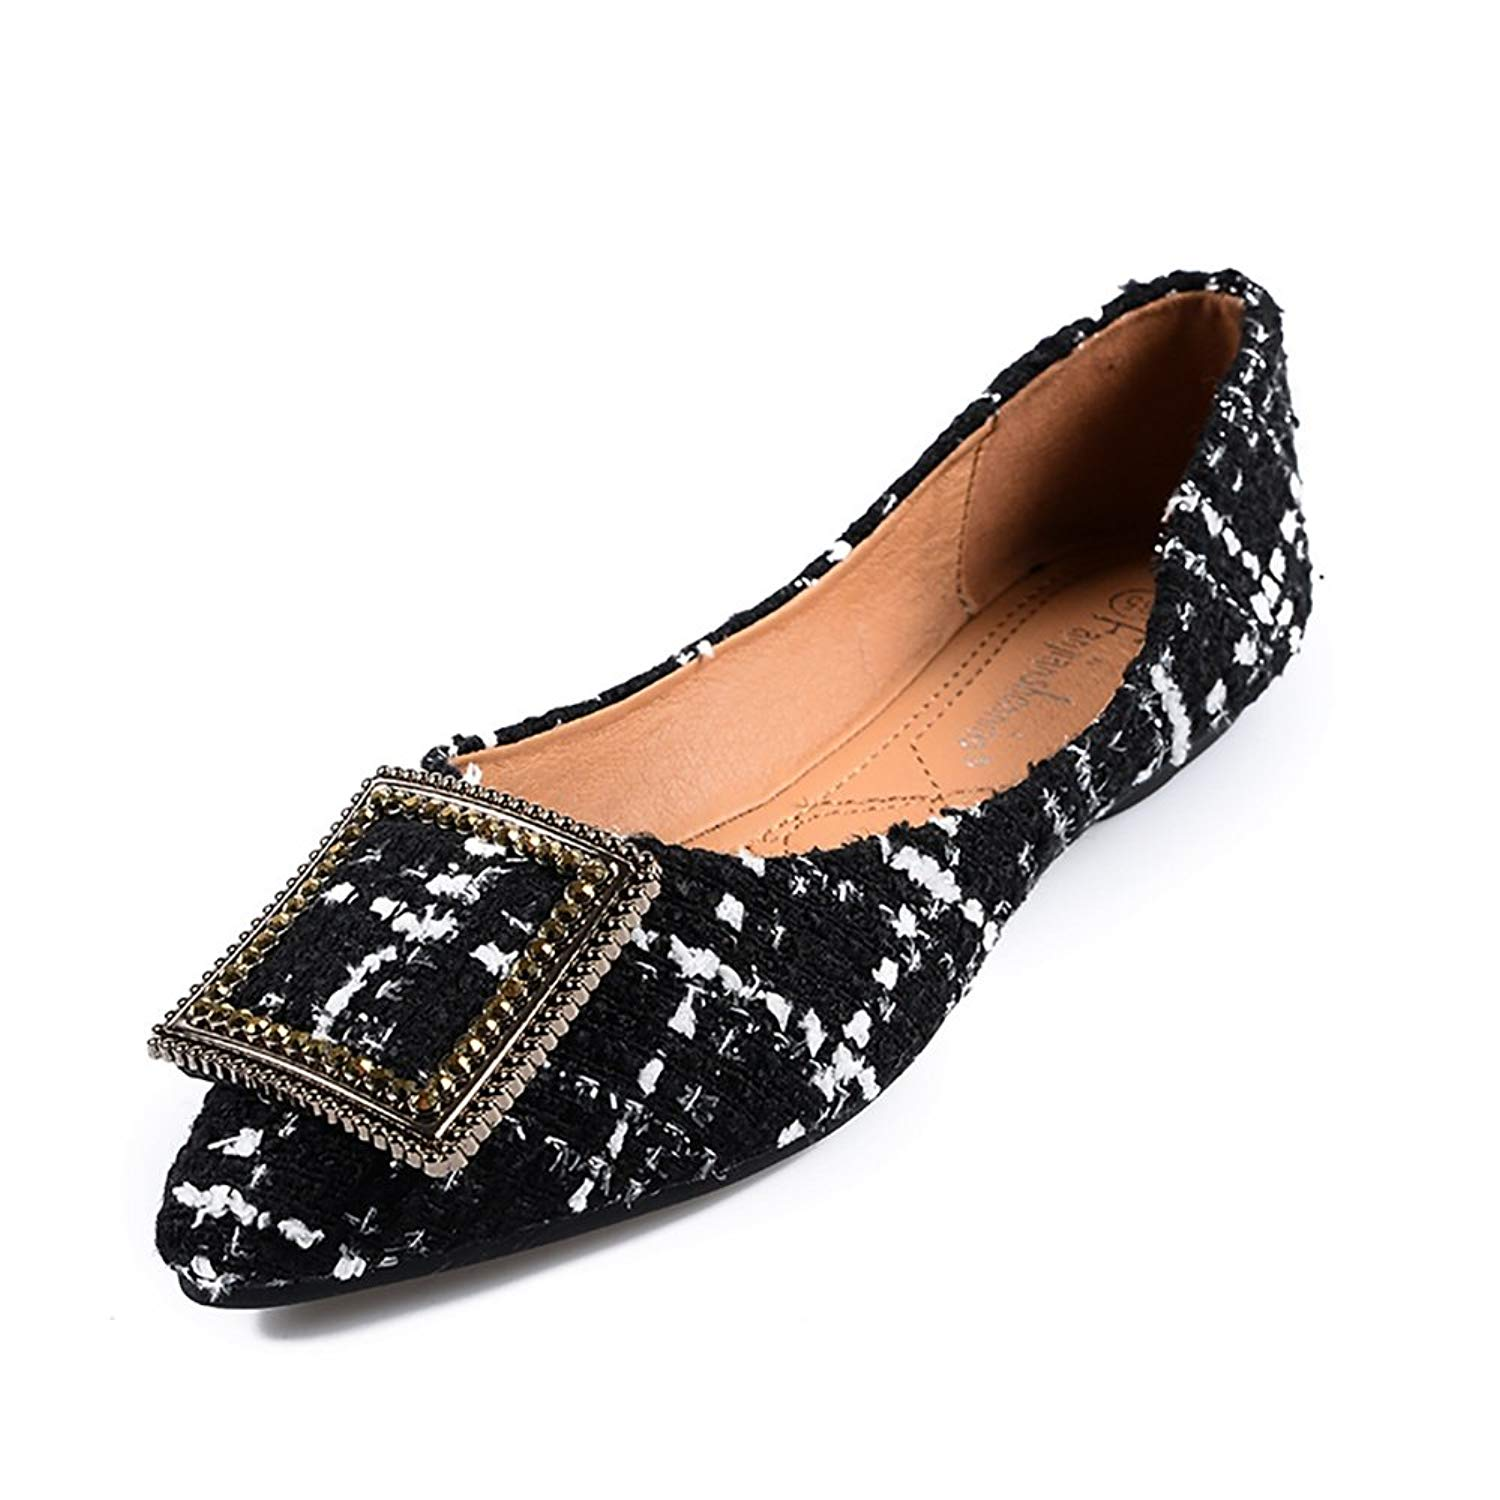 Naomiky New Casual Flat Shoes Woman Brand Platform Slip-On with Round Toe Spring Summer 35-40 Size